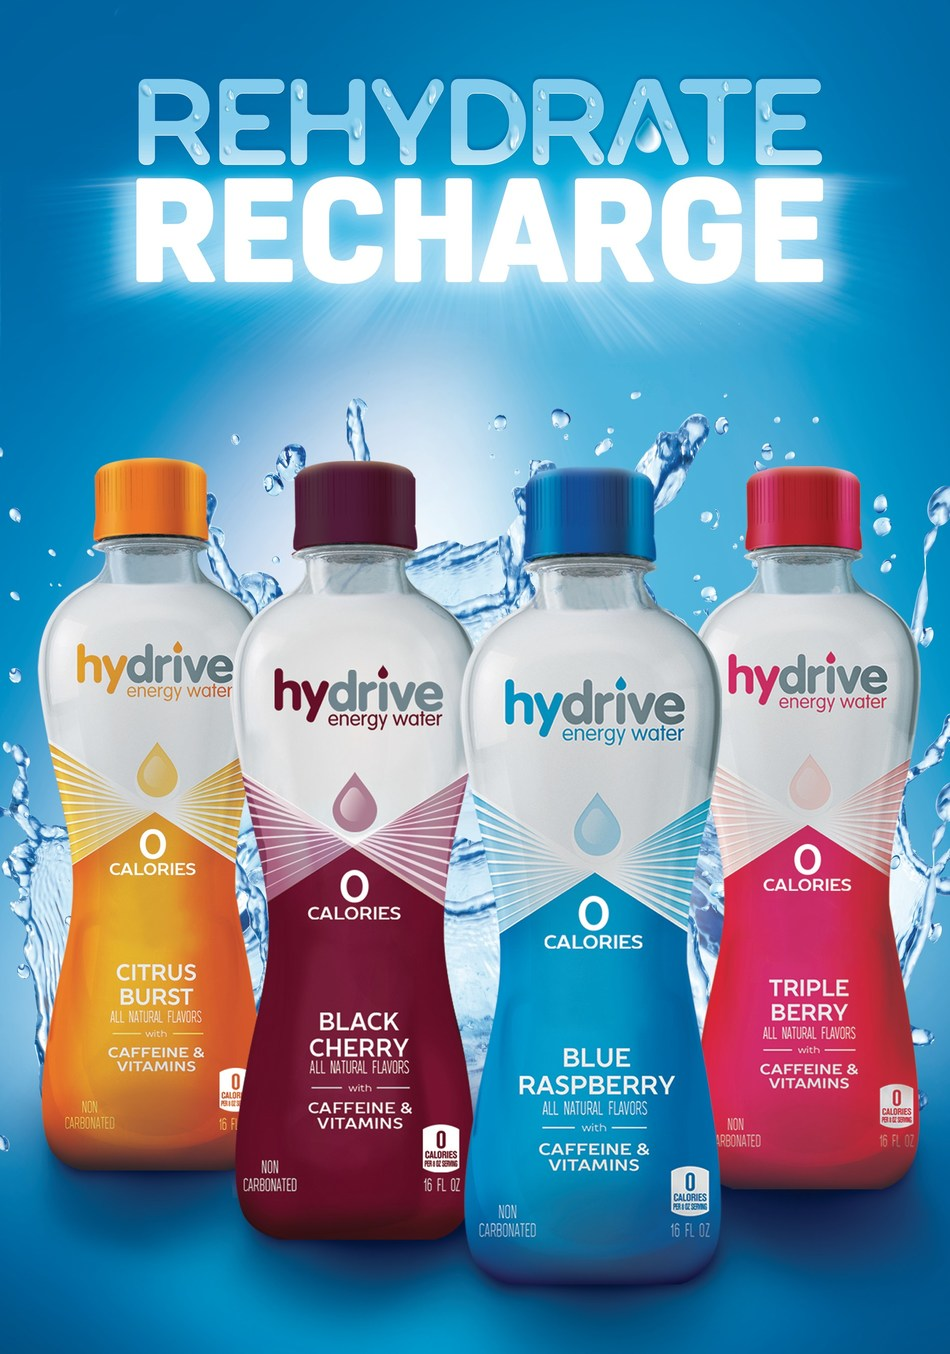 Hydrive Energy Water Relaunches with a New Zero-Calorie Enhanced Formula and Updated Brand Image